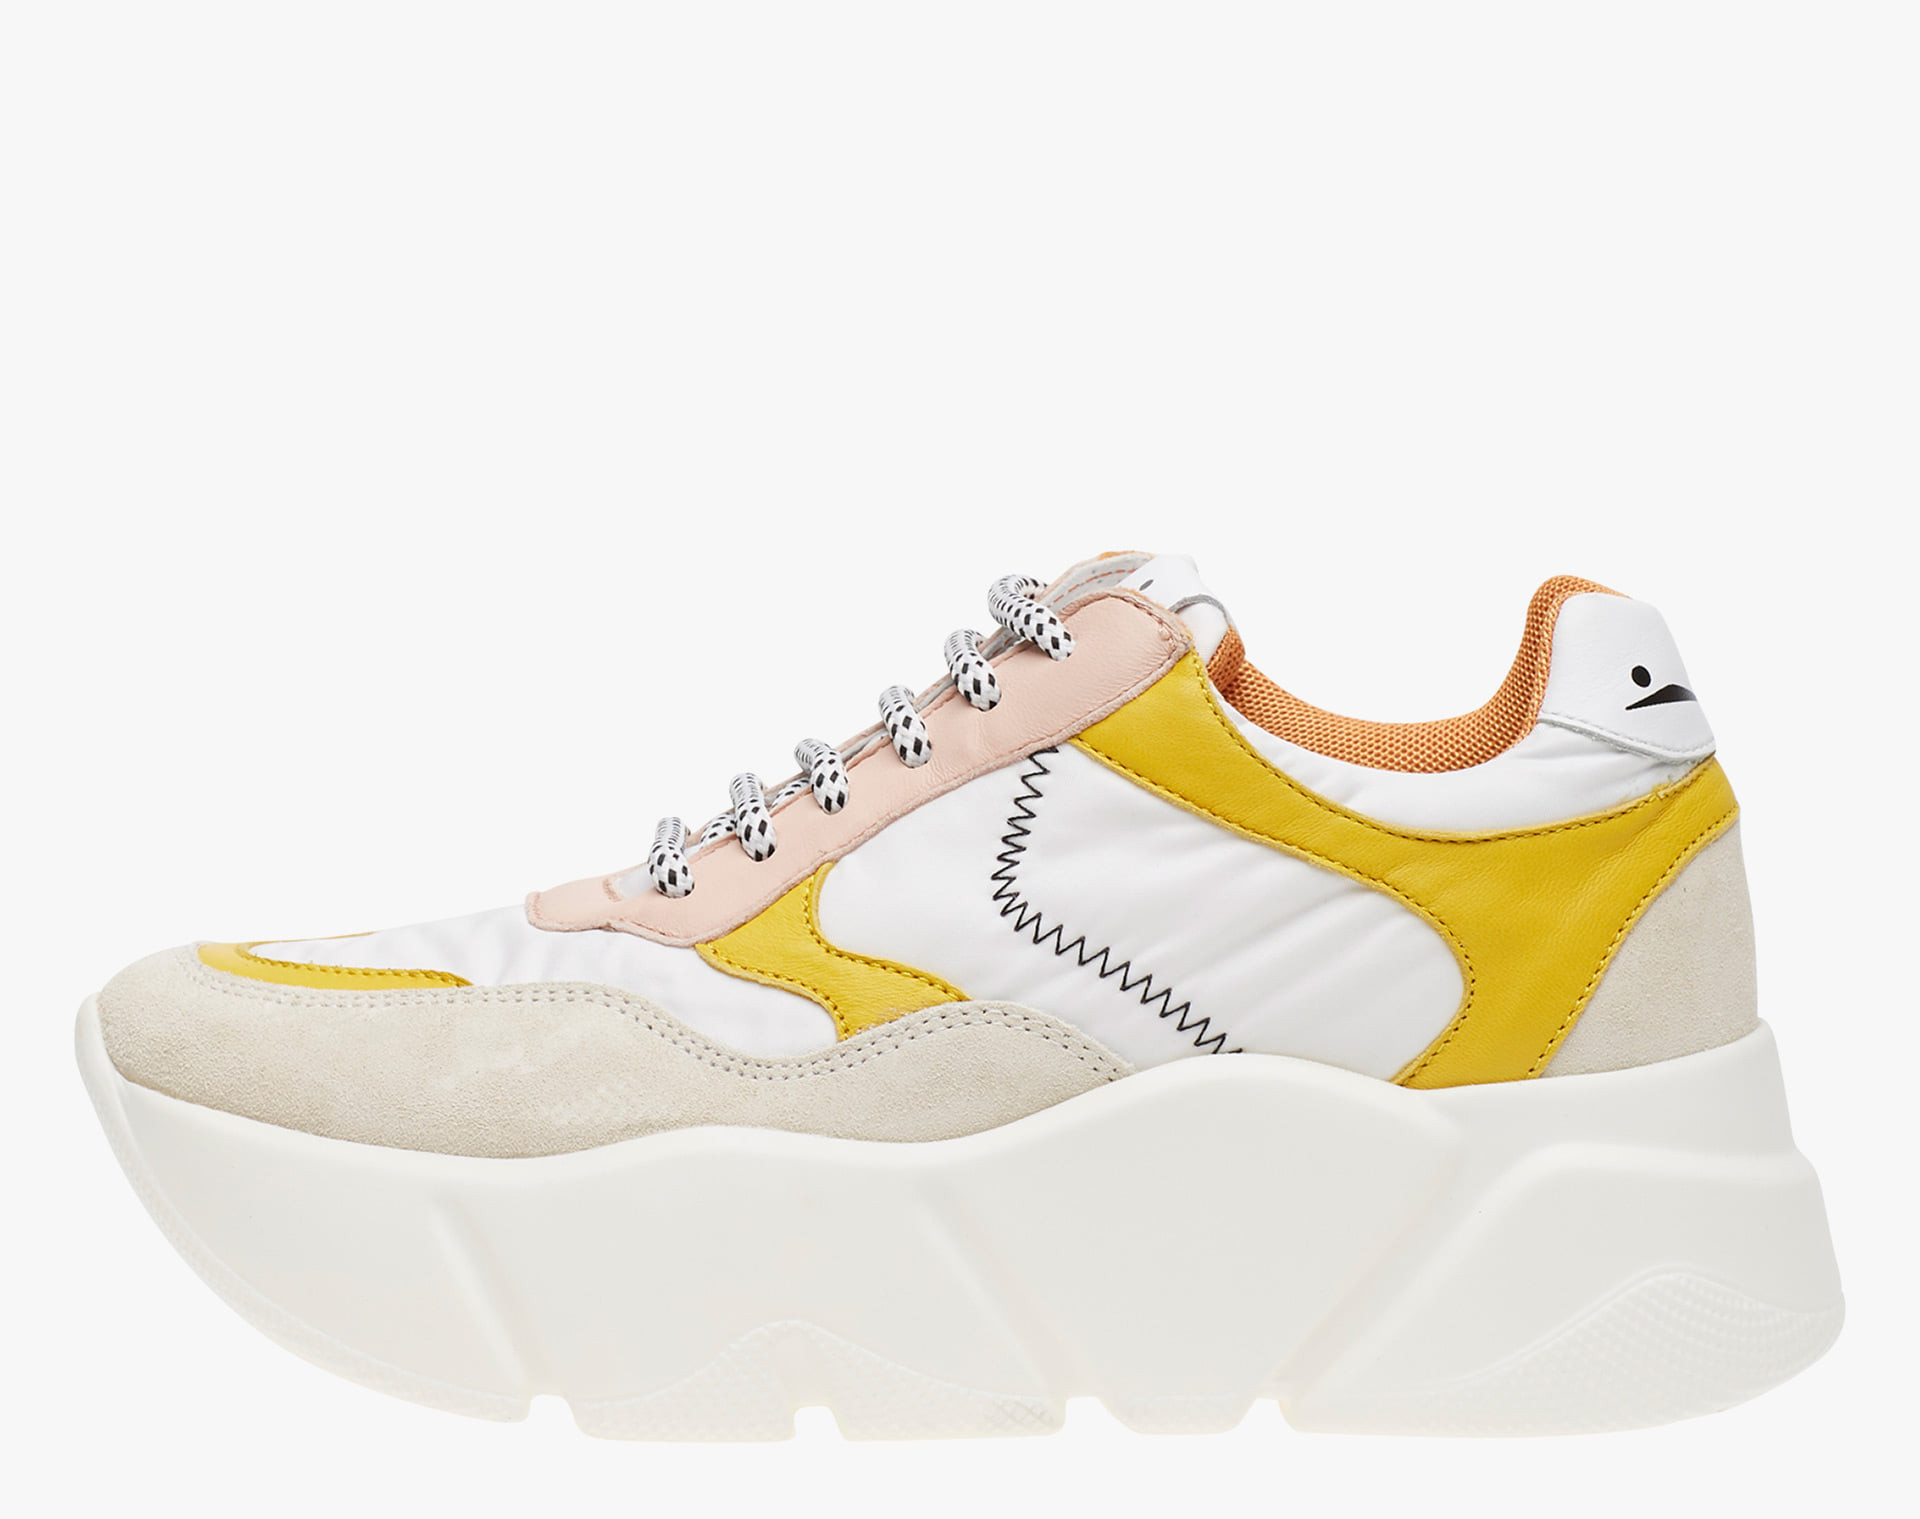 CREEP - Suede and technical fabric sneakers - White-Yellow-Pale pink